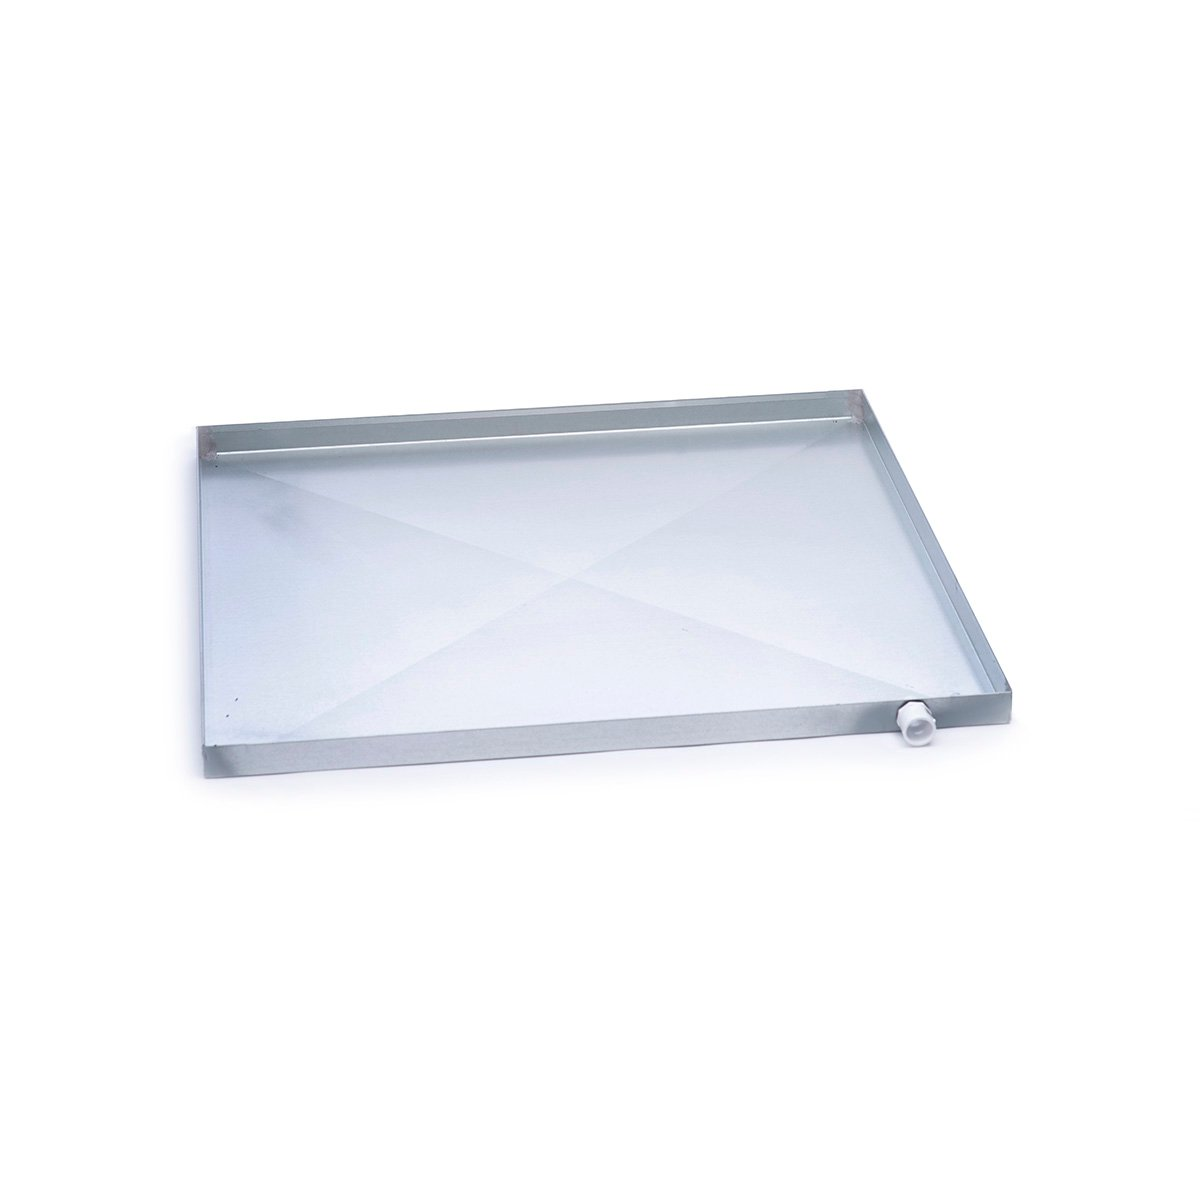 Secondary Drain Pan, M2430, 2-Module